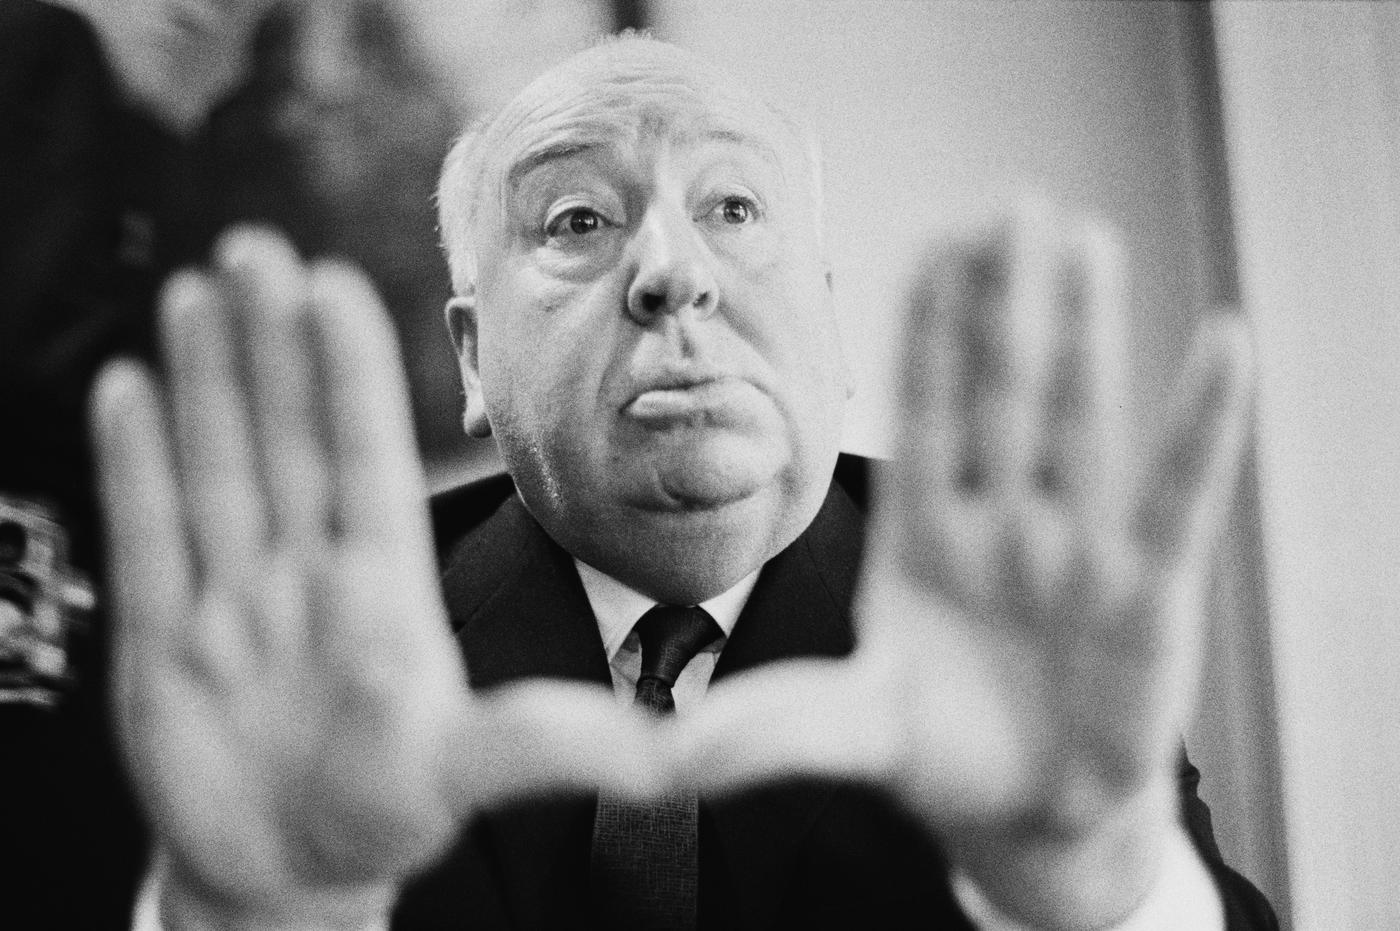 alfred hitchcock 01